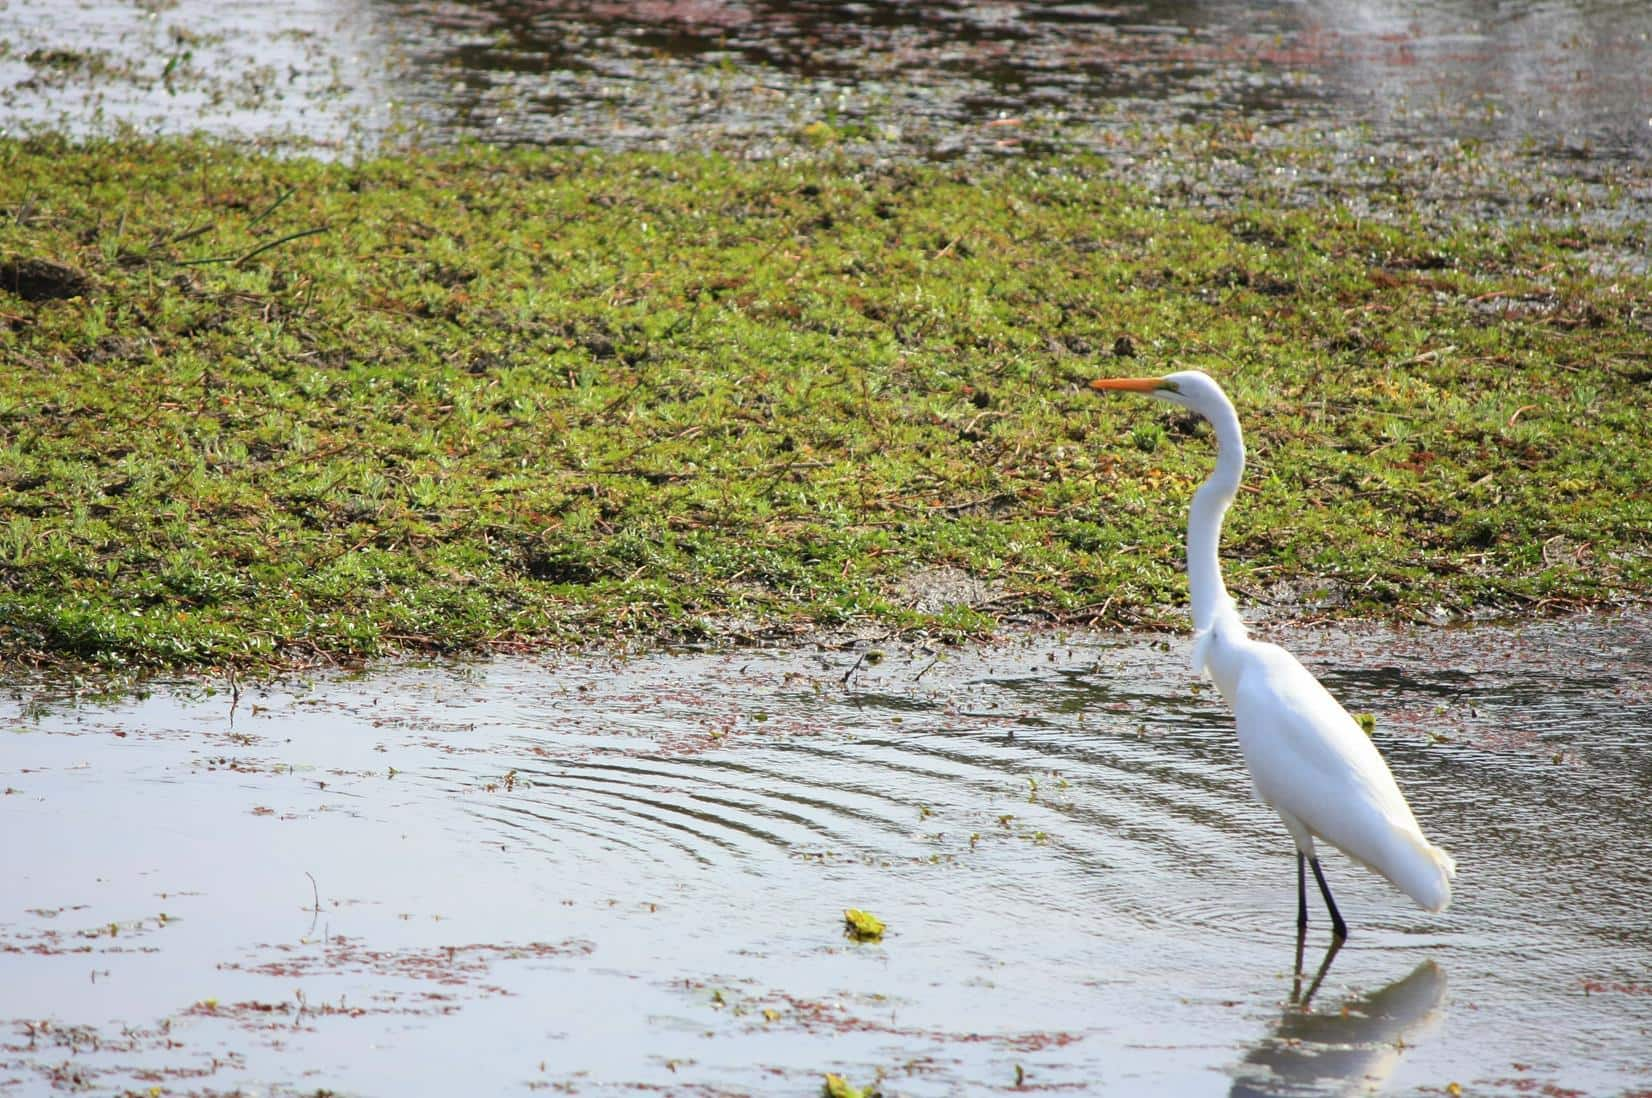 A White Heron in the shallow water of the Letaba River.